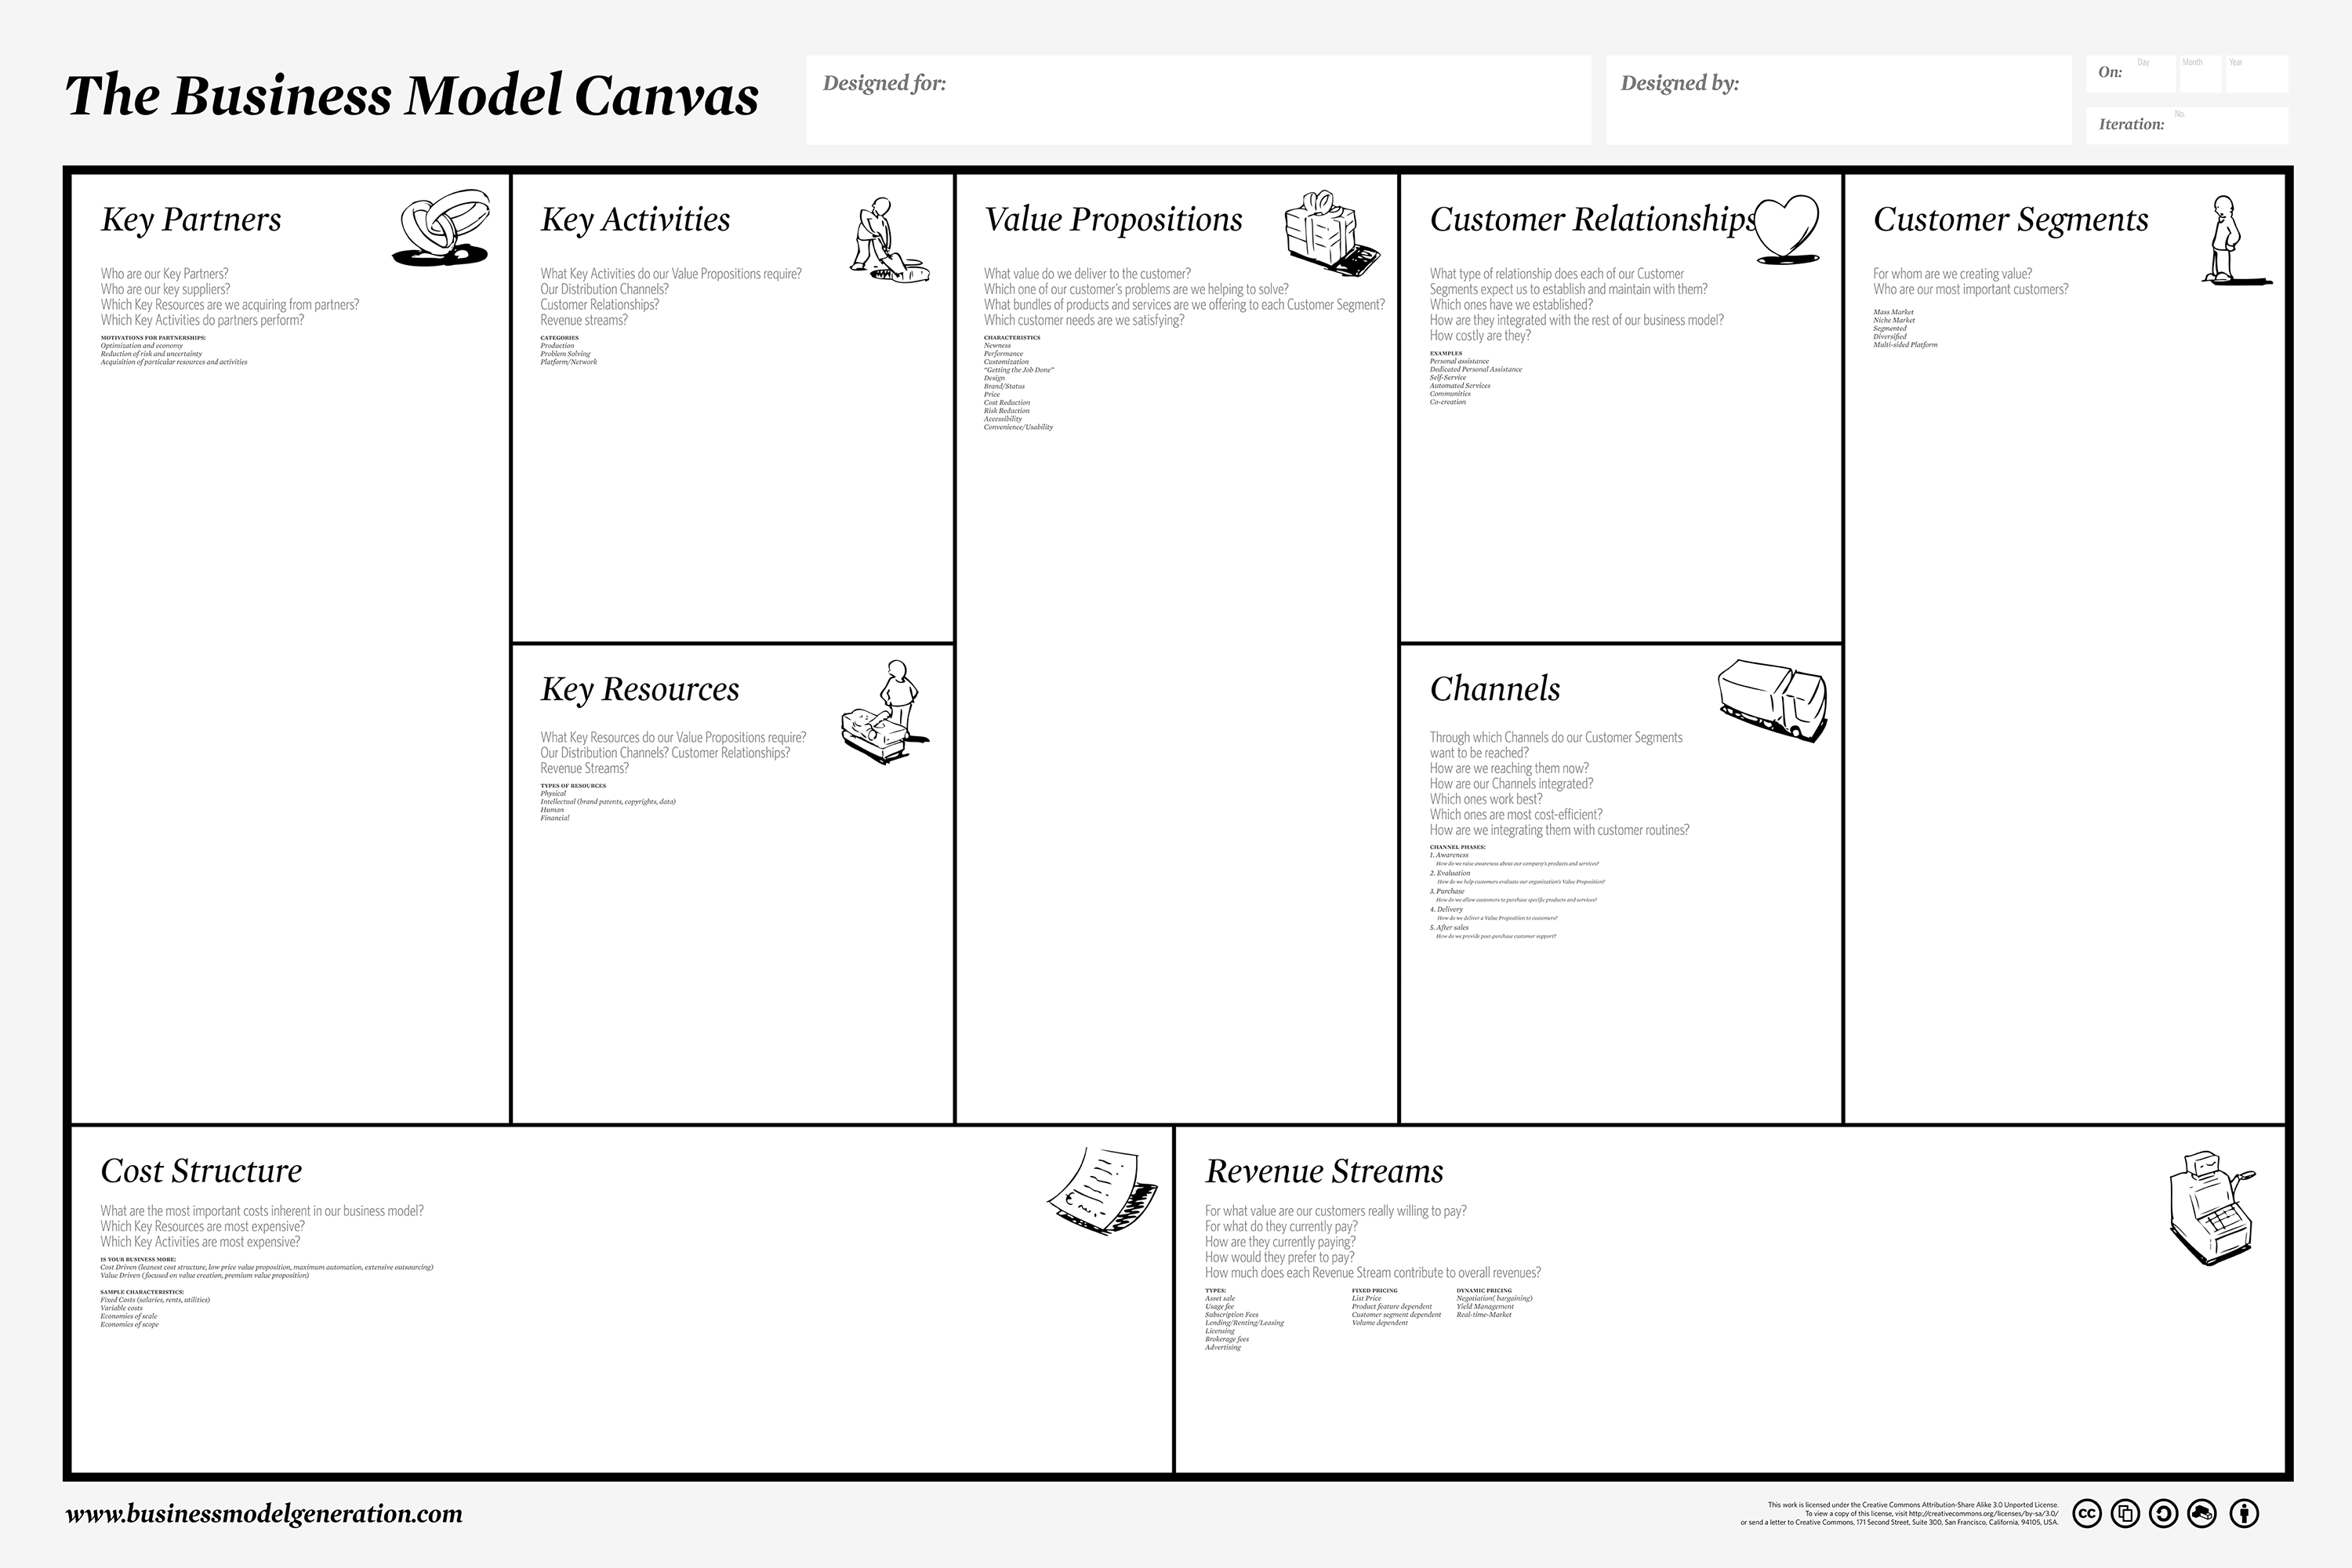 Business models knowledge center business model canvas generic business model template flashek Choice Image